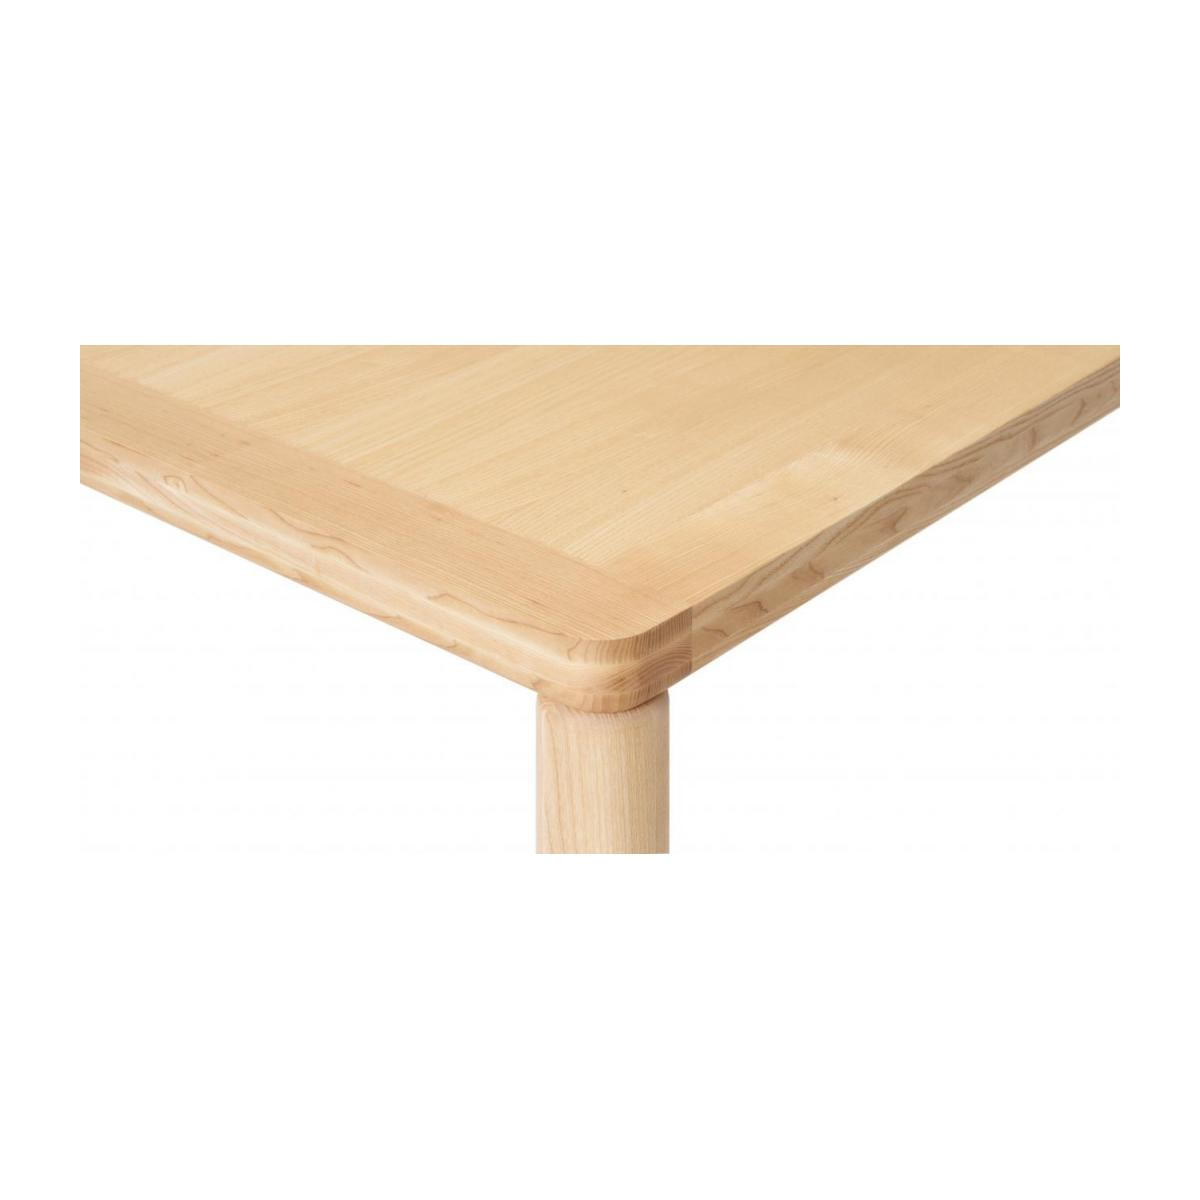 Table en frêne clair - Design by Terence Woodgate n°4